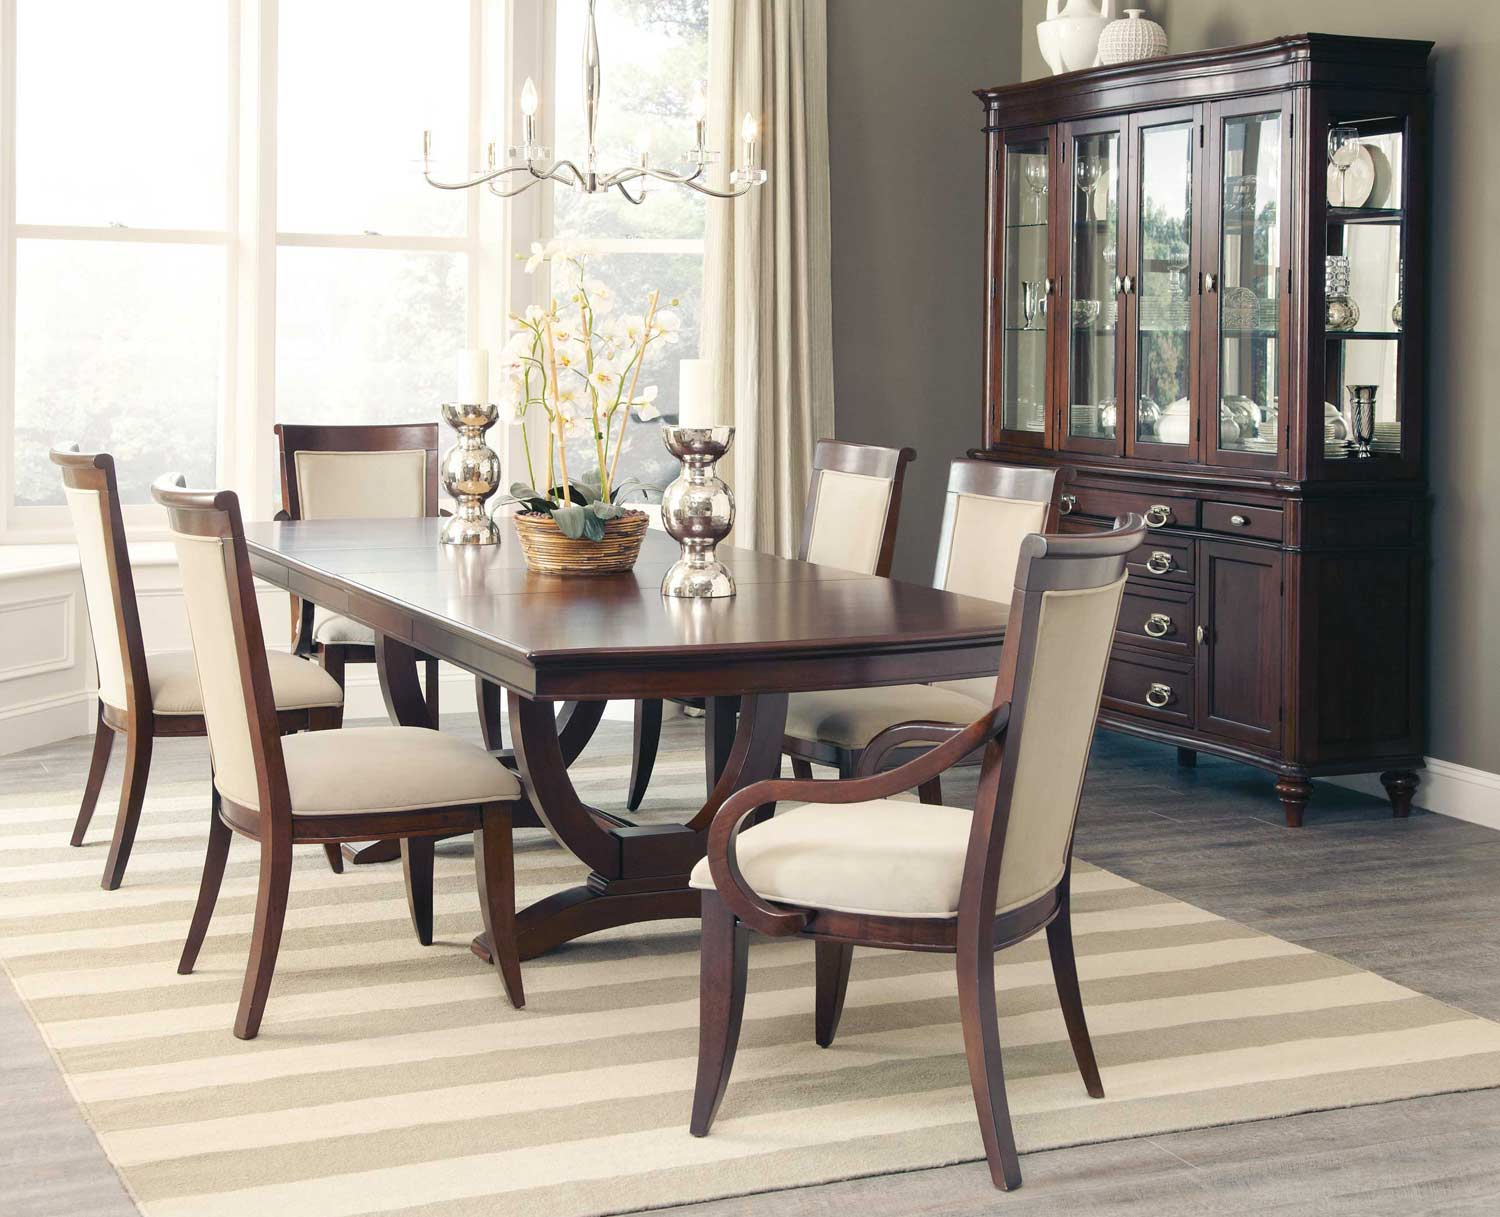 Coaster Alyssa Rect Dining Set Walnut 105441 Din Set At